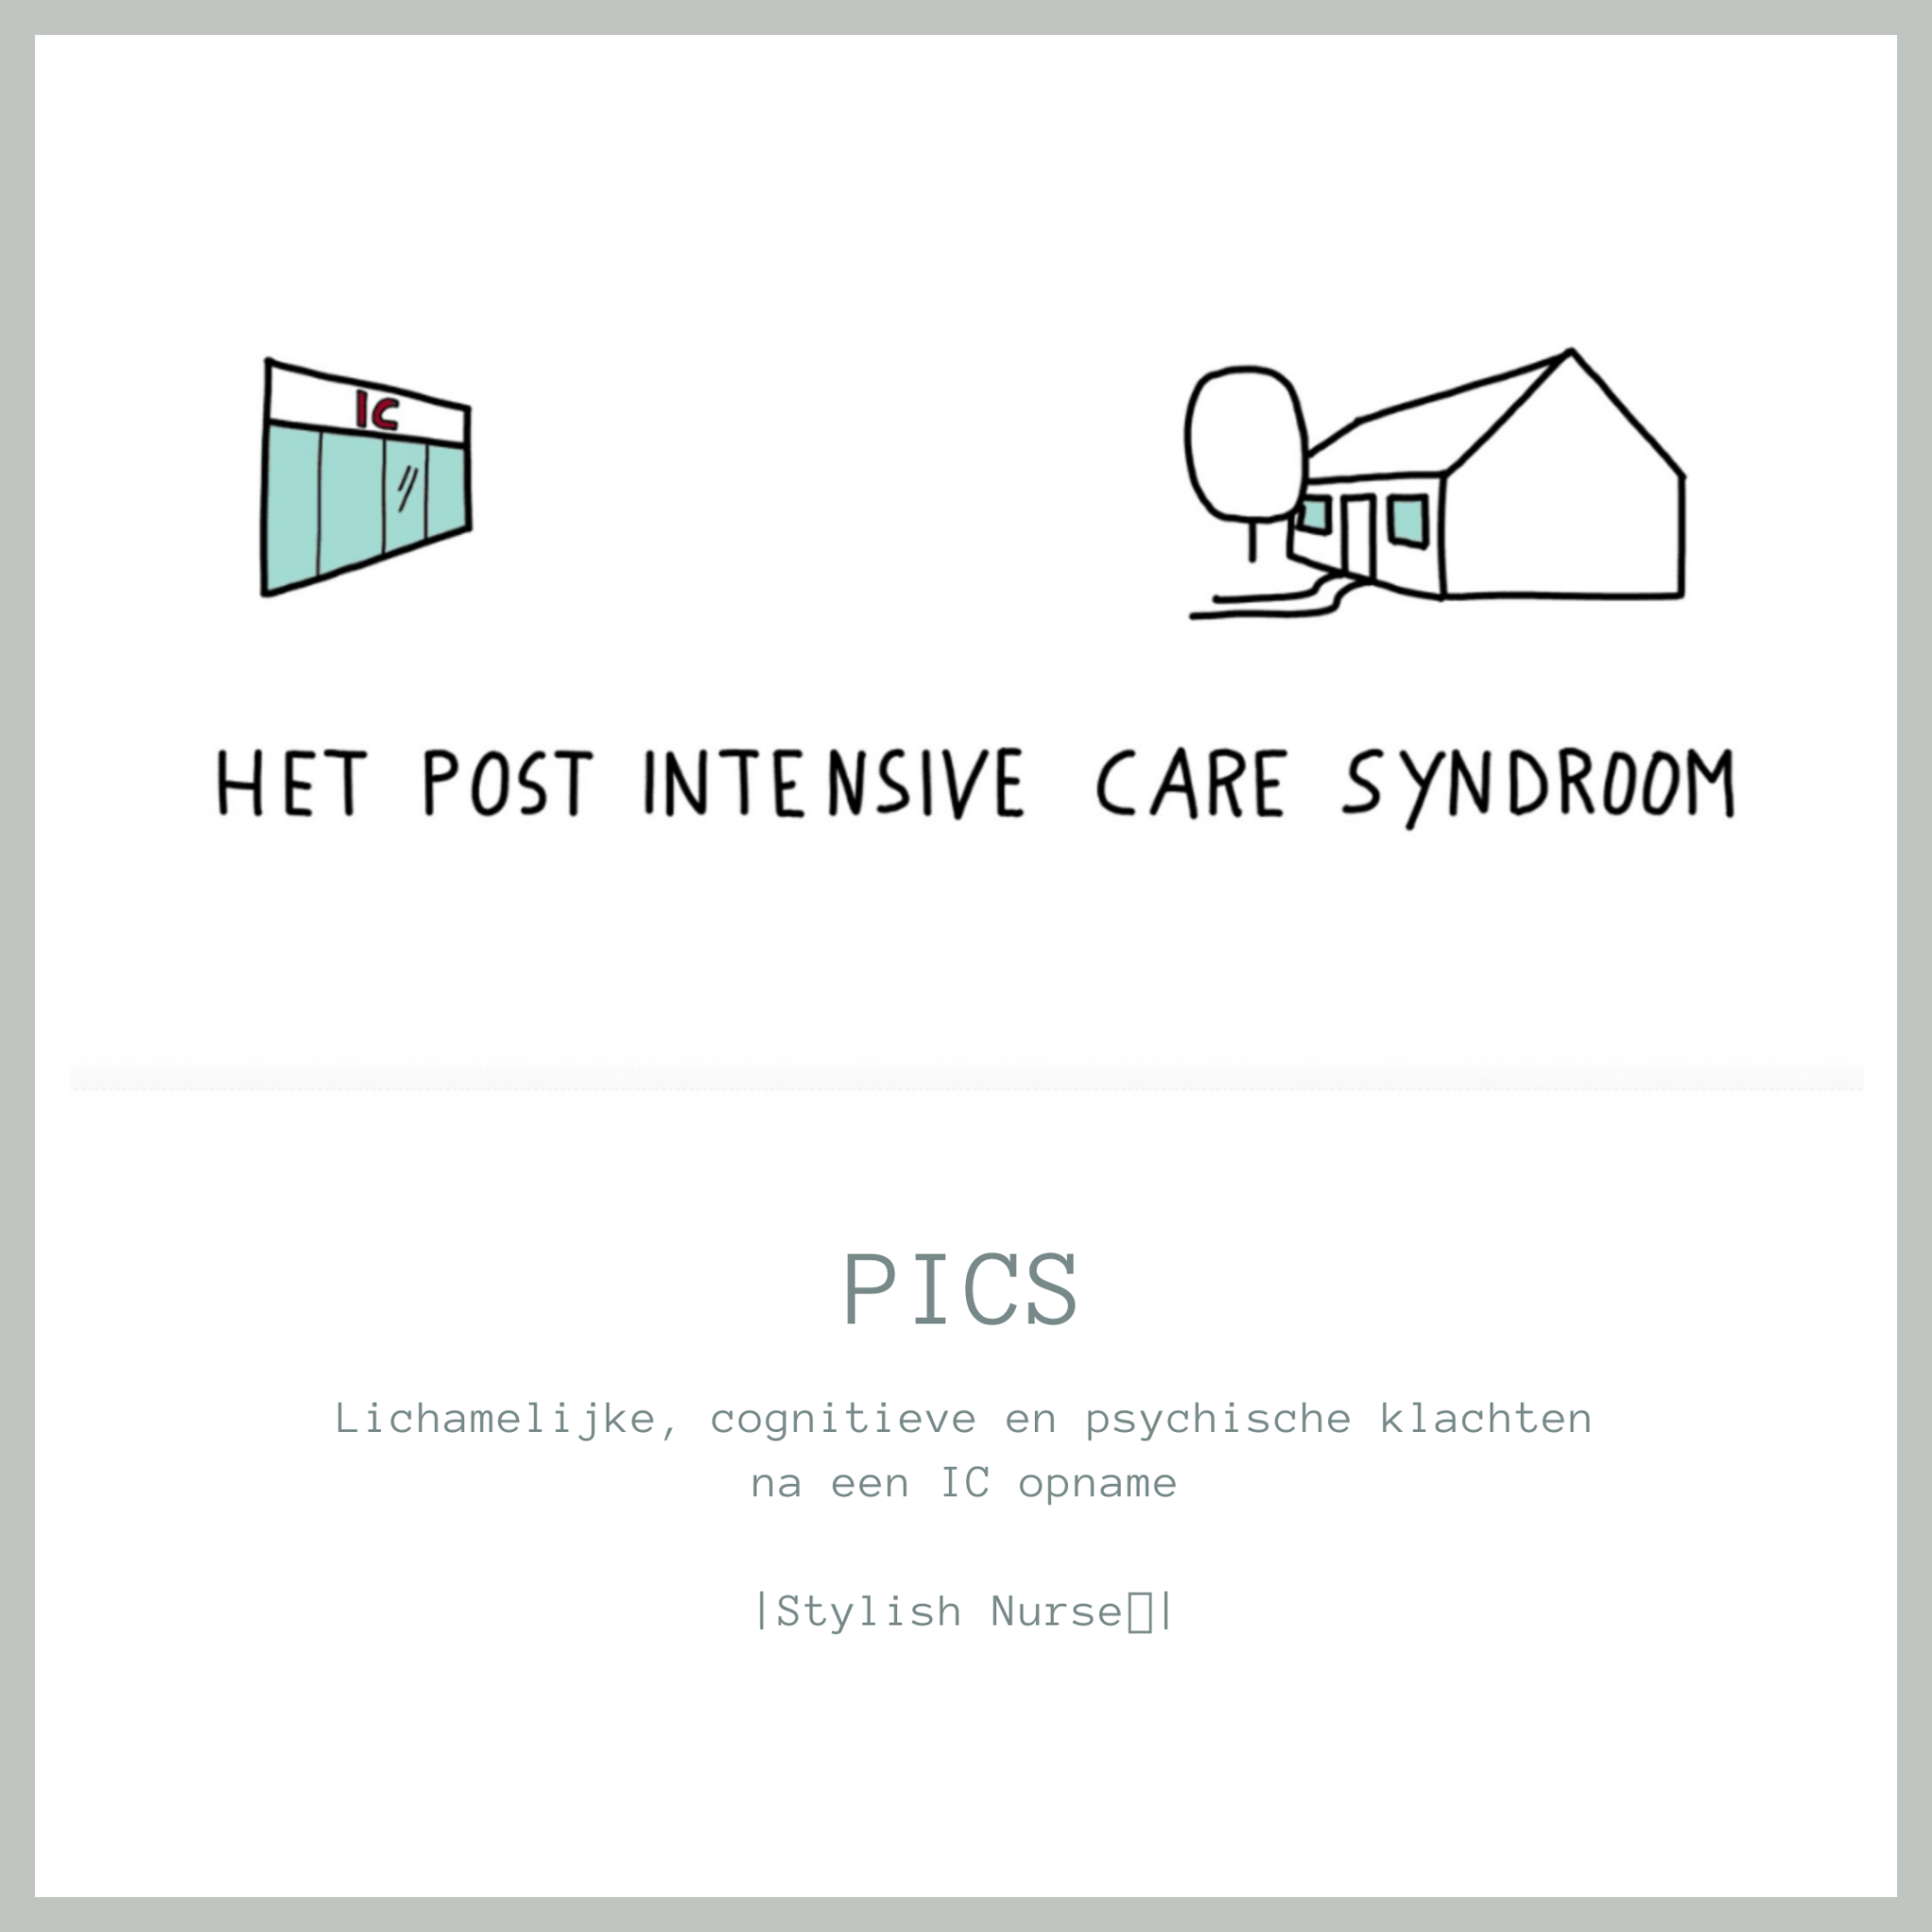 Post Intensive Care Syndroom